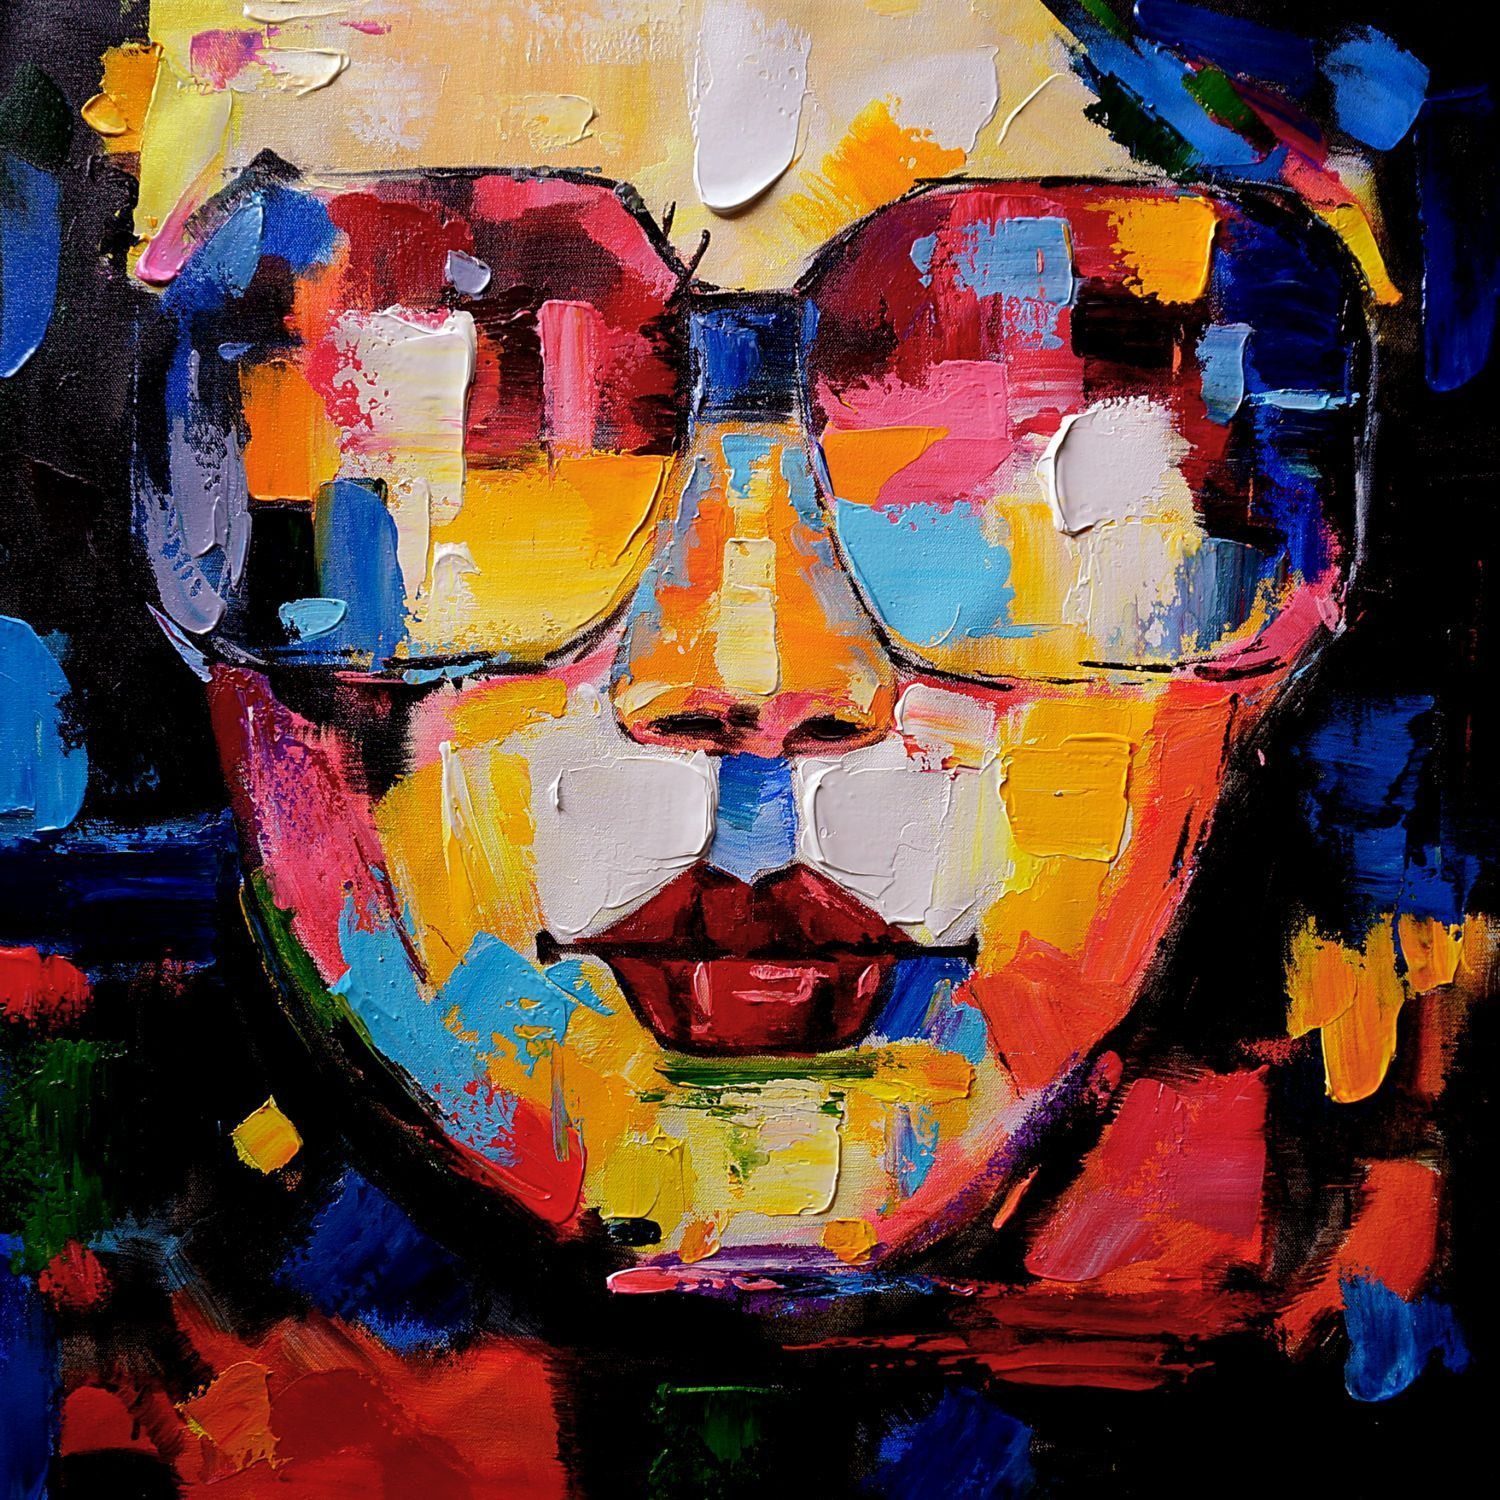 Wall Art Women Face Abstract Painting Handmade Oil Painting on